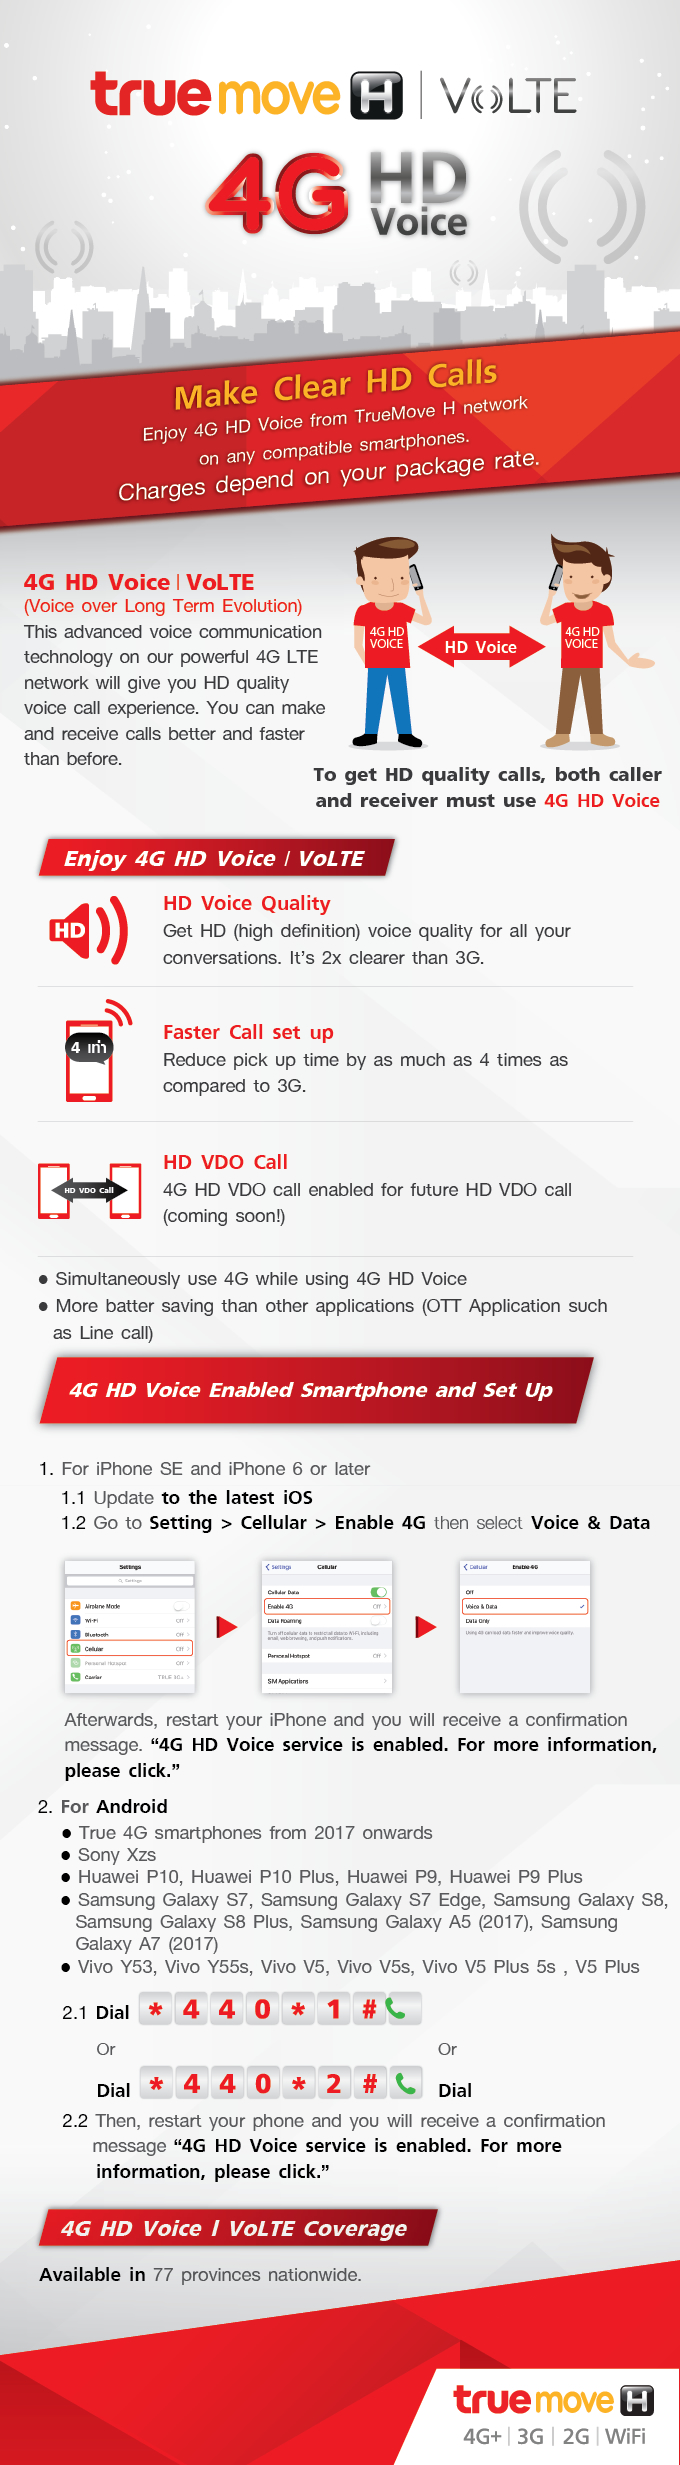 HD Voice Now Available on TrueMove H Network by TrueMove H